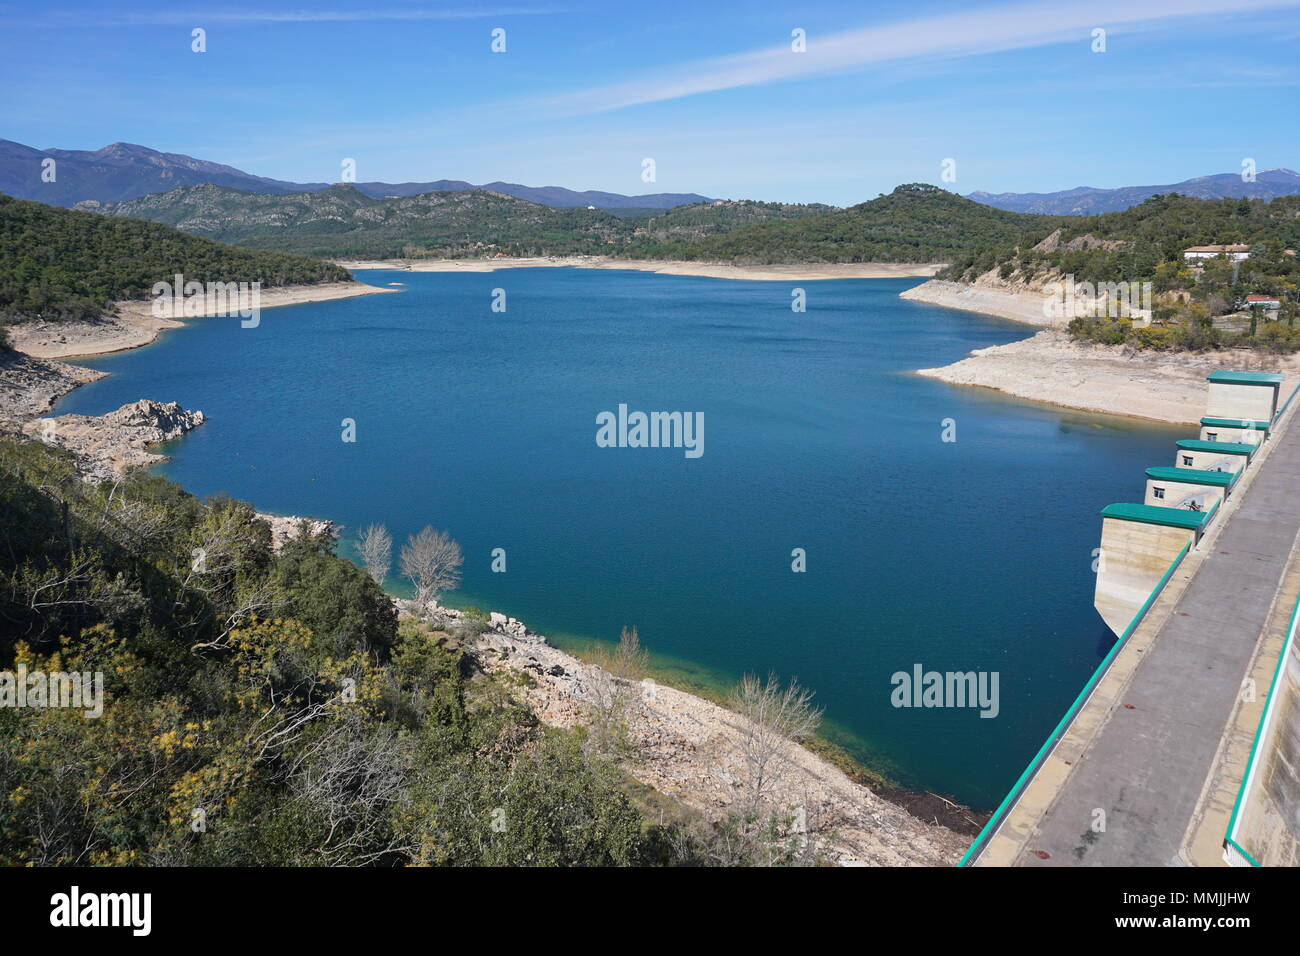 The reservoir and dam of Darnius Boadella in the Province of Girona, Alt Emporda, Catalonia, Spain Stock Photo